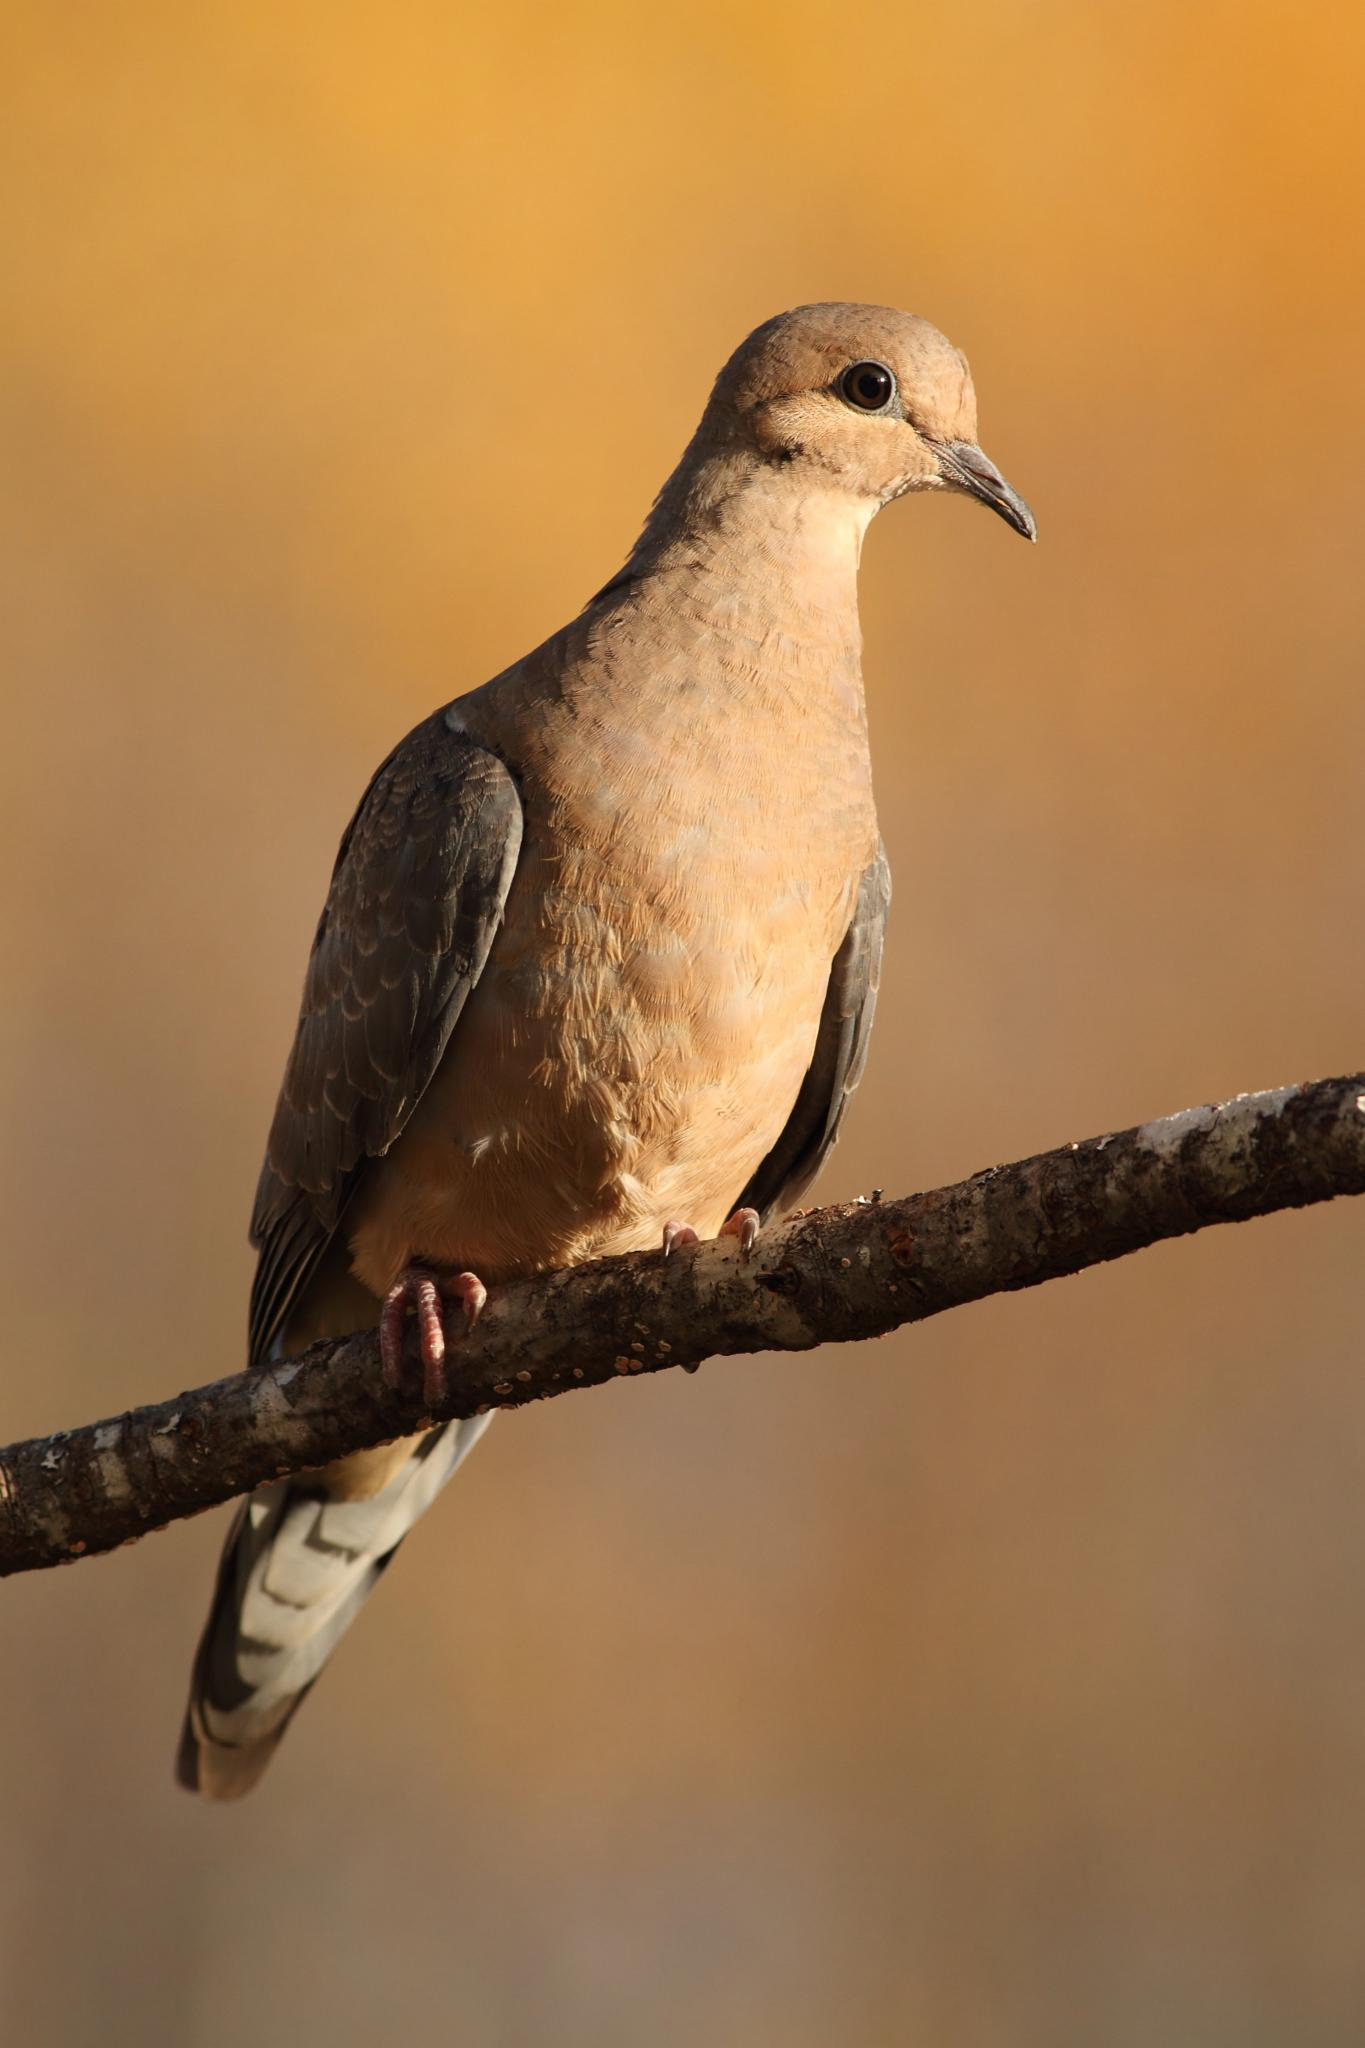 Mourning Dove by pierre.larouche.790